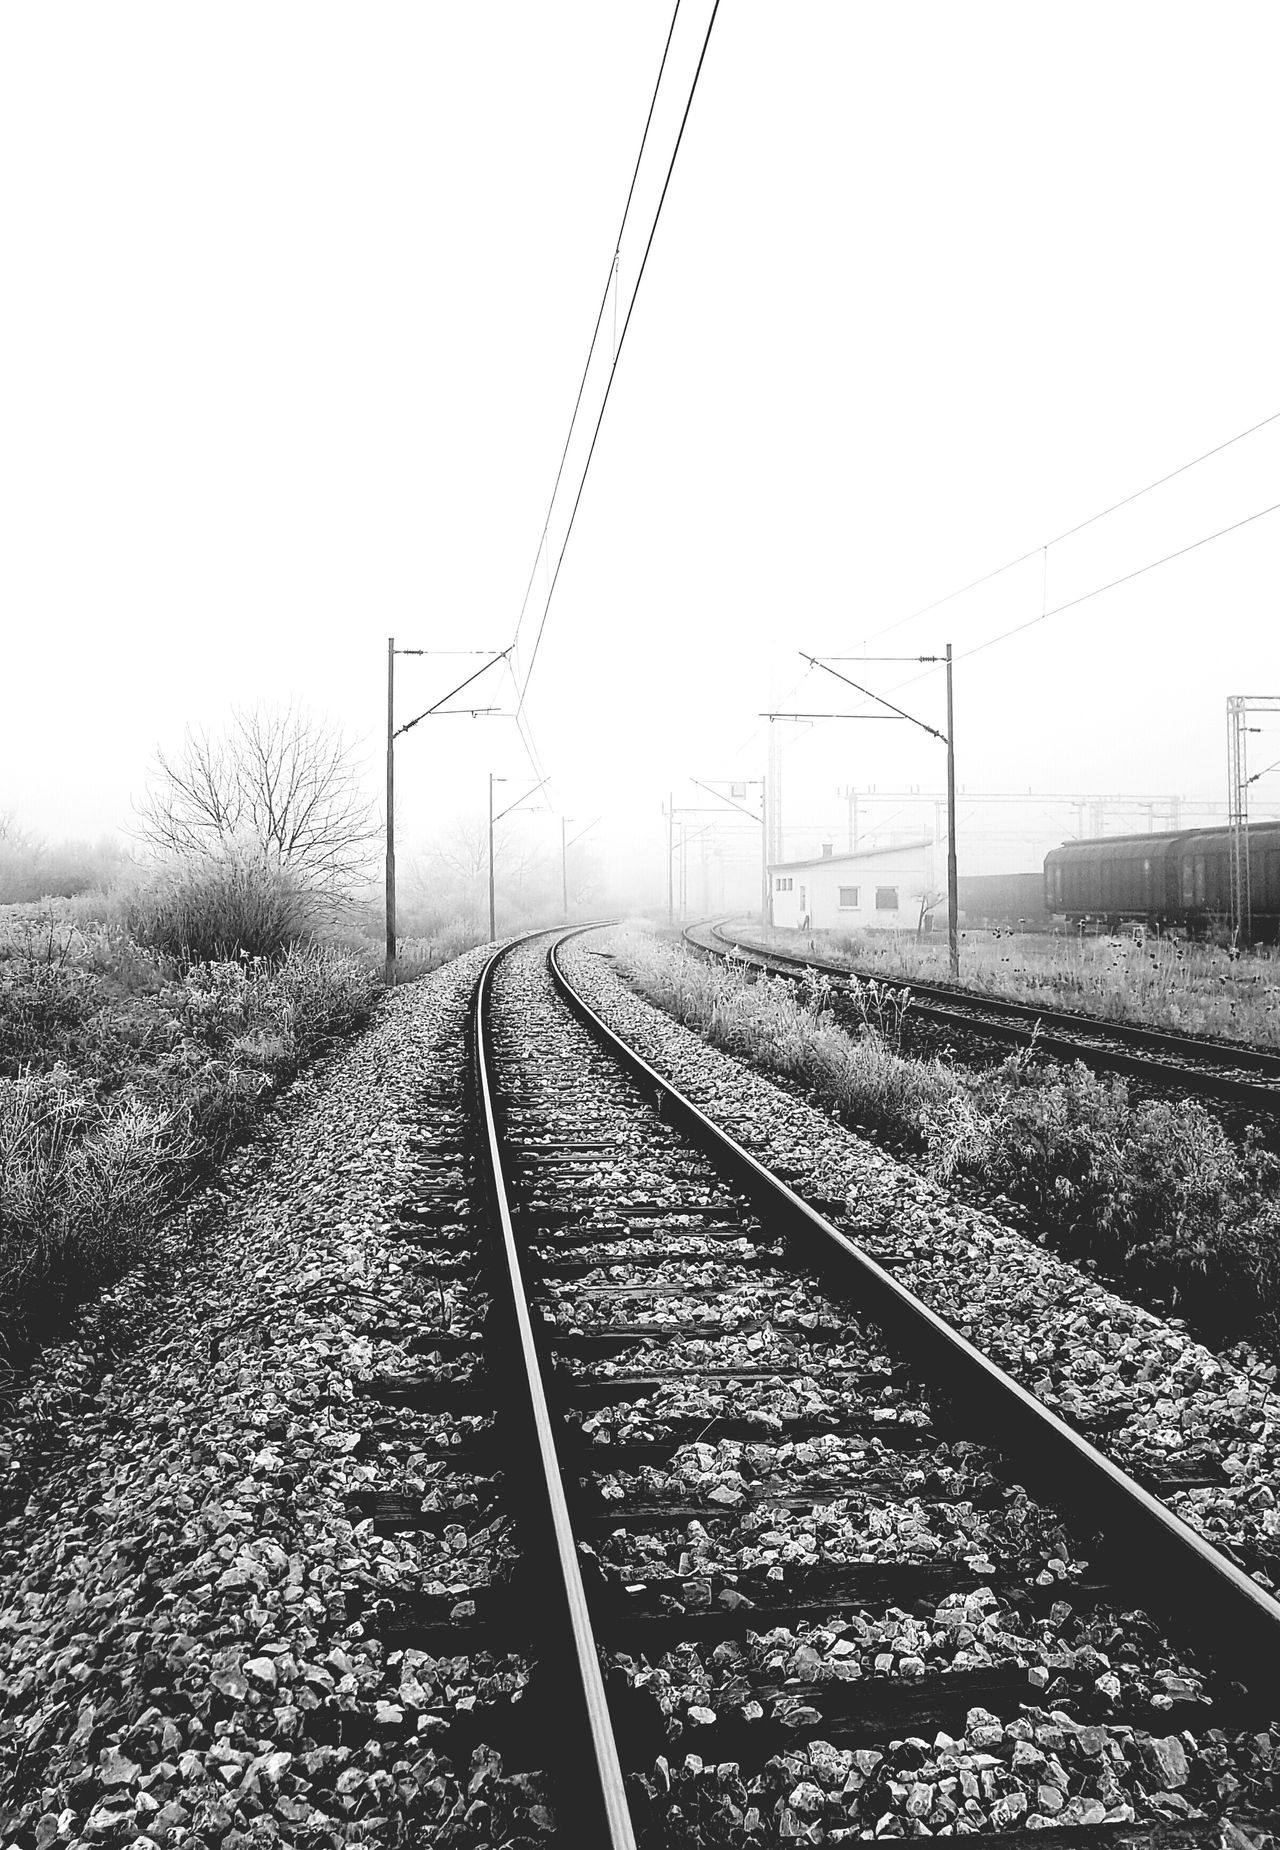 Blackandwhite Photography Blackandwhite Train Tracks Traveling Travelphotography Train Station Travelling Train Track train Outdoors Winter Wintertime No People Day Fog Misty Day Journey Wandering Winterscapes Searching New Unknown Journey Unknown Tranquility Tranquil Scene Serene